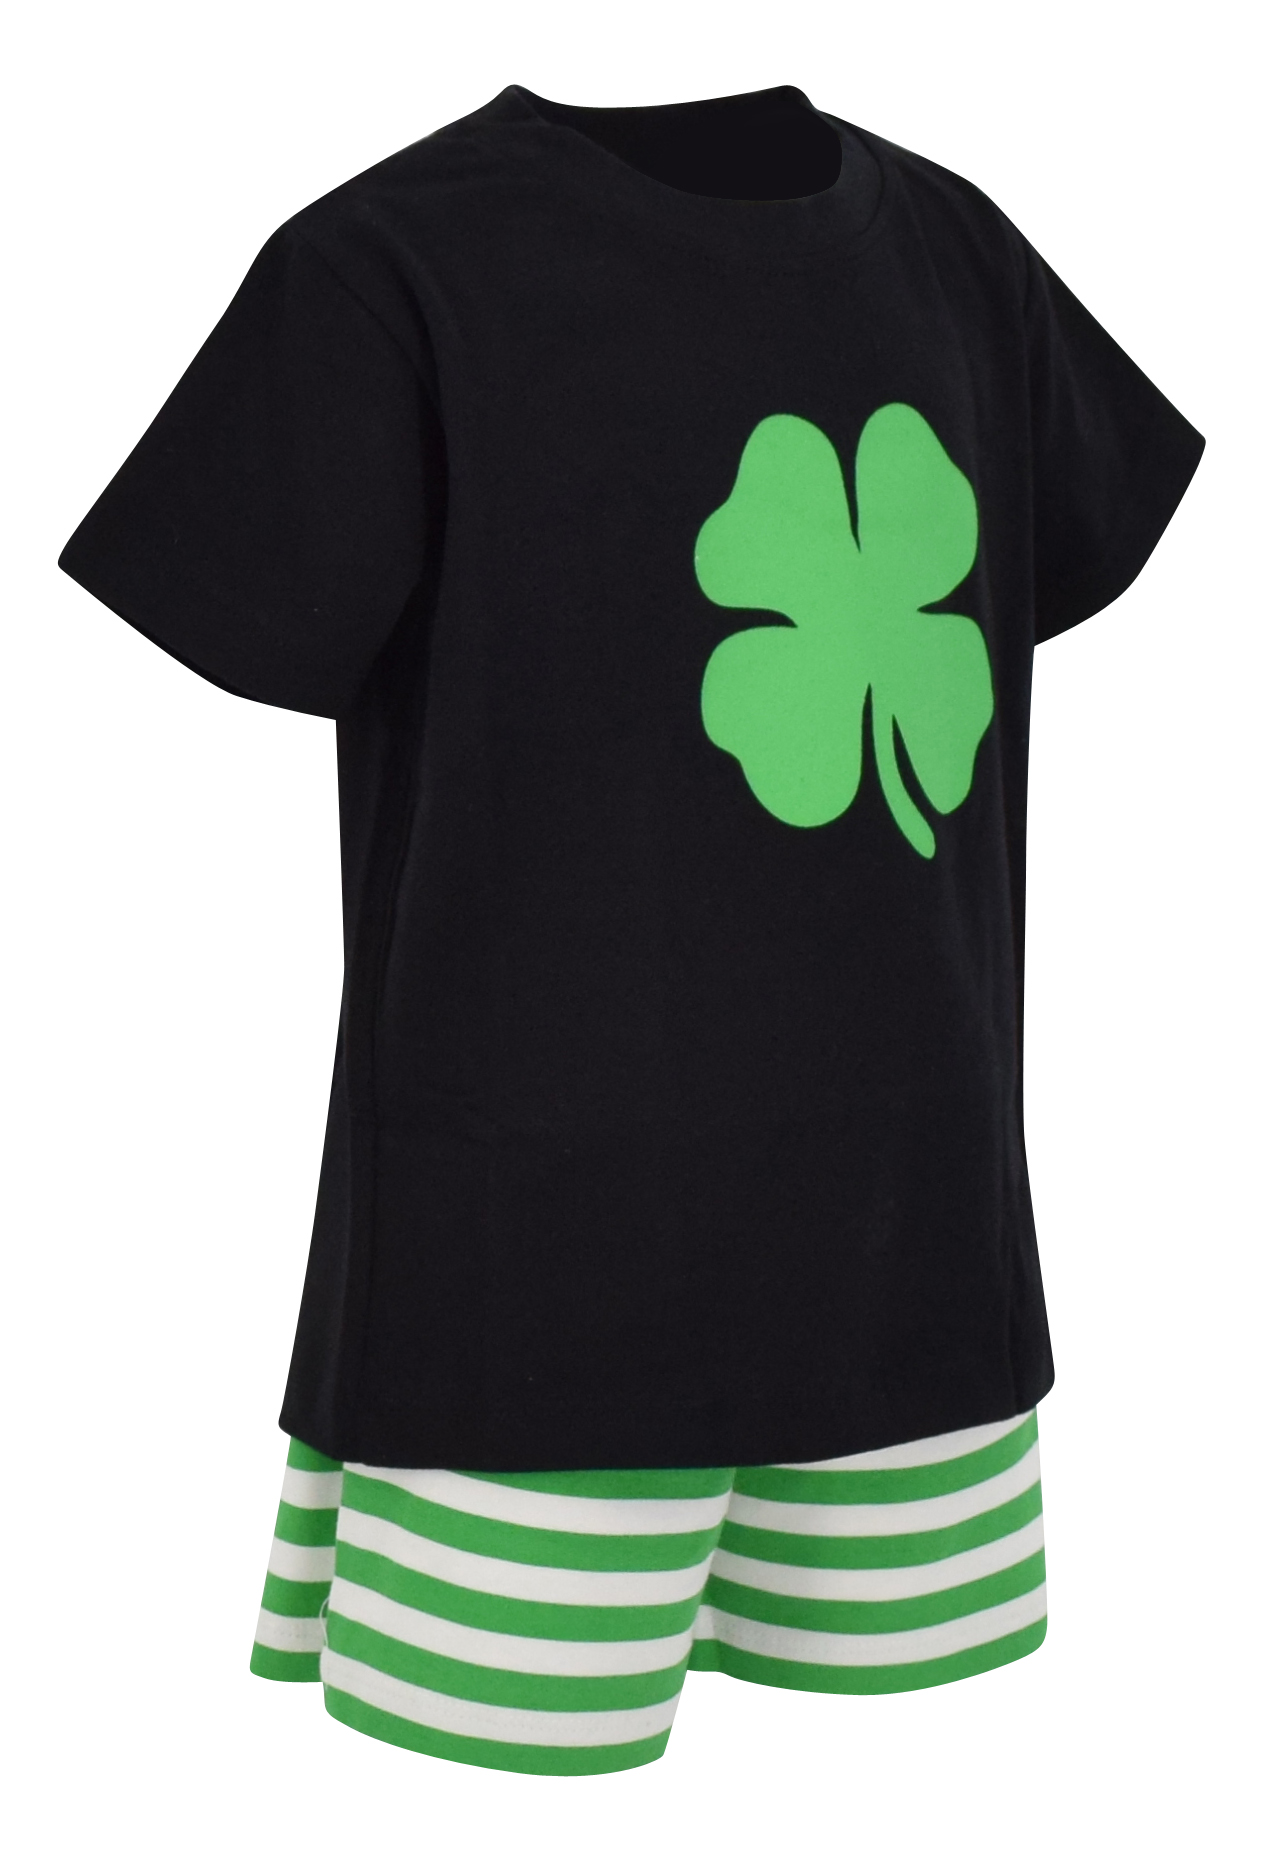 Boys-2-Piece-ST-Patricks-Day-Clover-Outfit-2t-3t-4t-5-6-7-8-Toddler-Kids-Clothes thumbnail 28